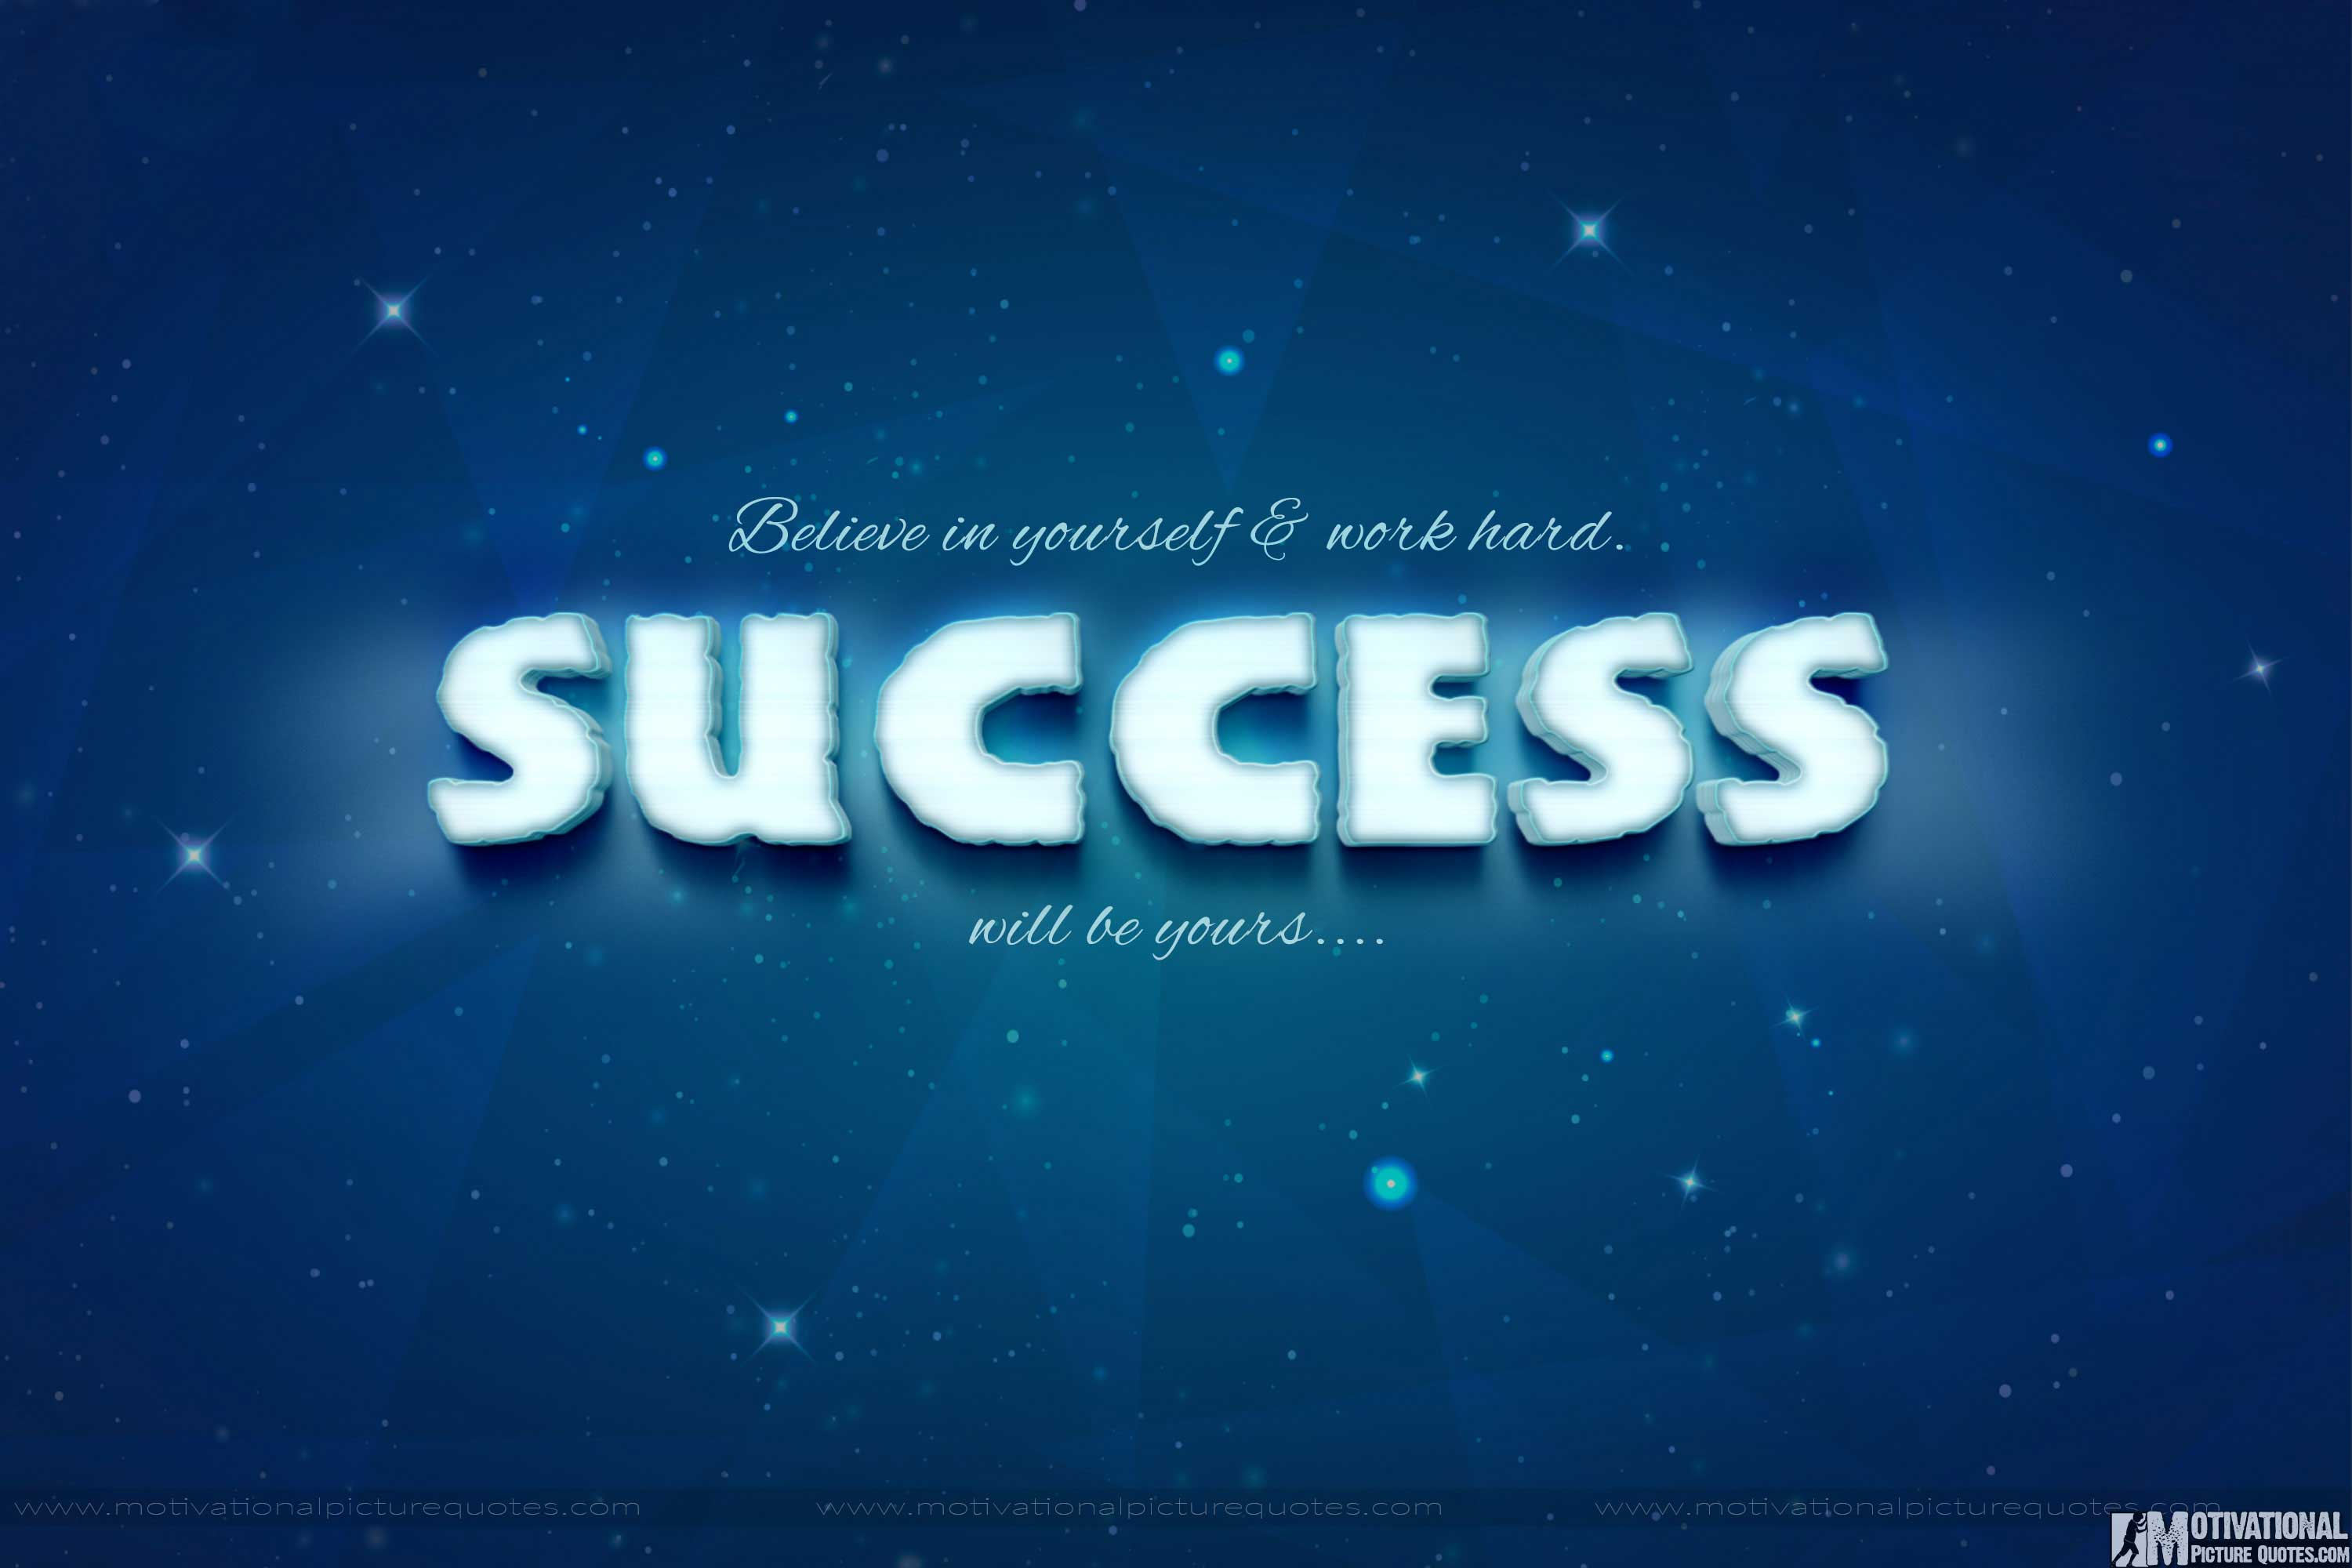 Motivational Success Wallpapers HD For Free Download